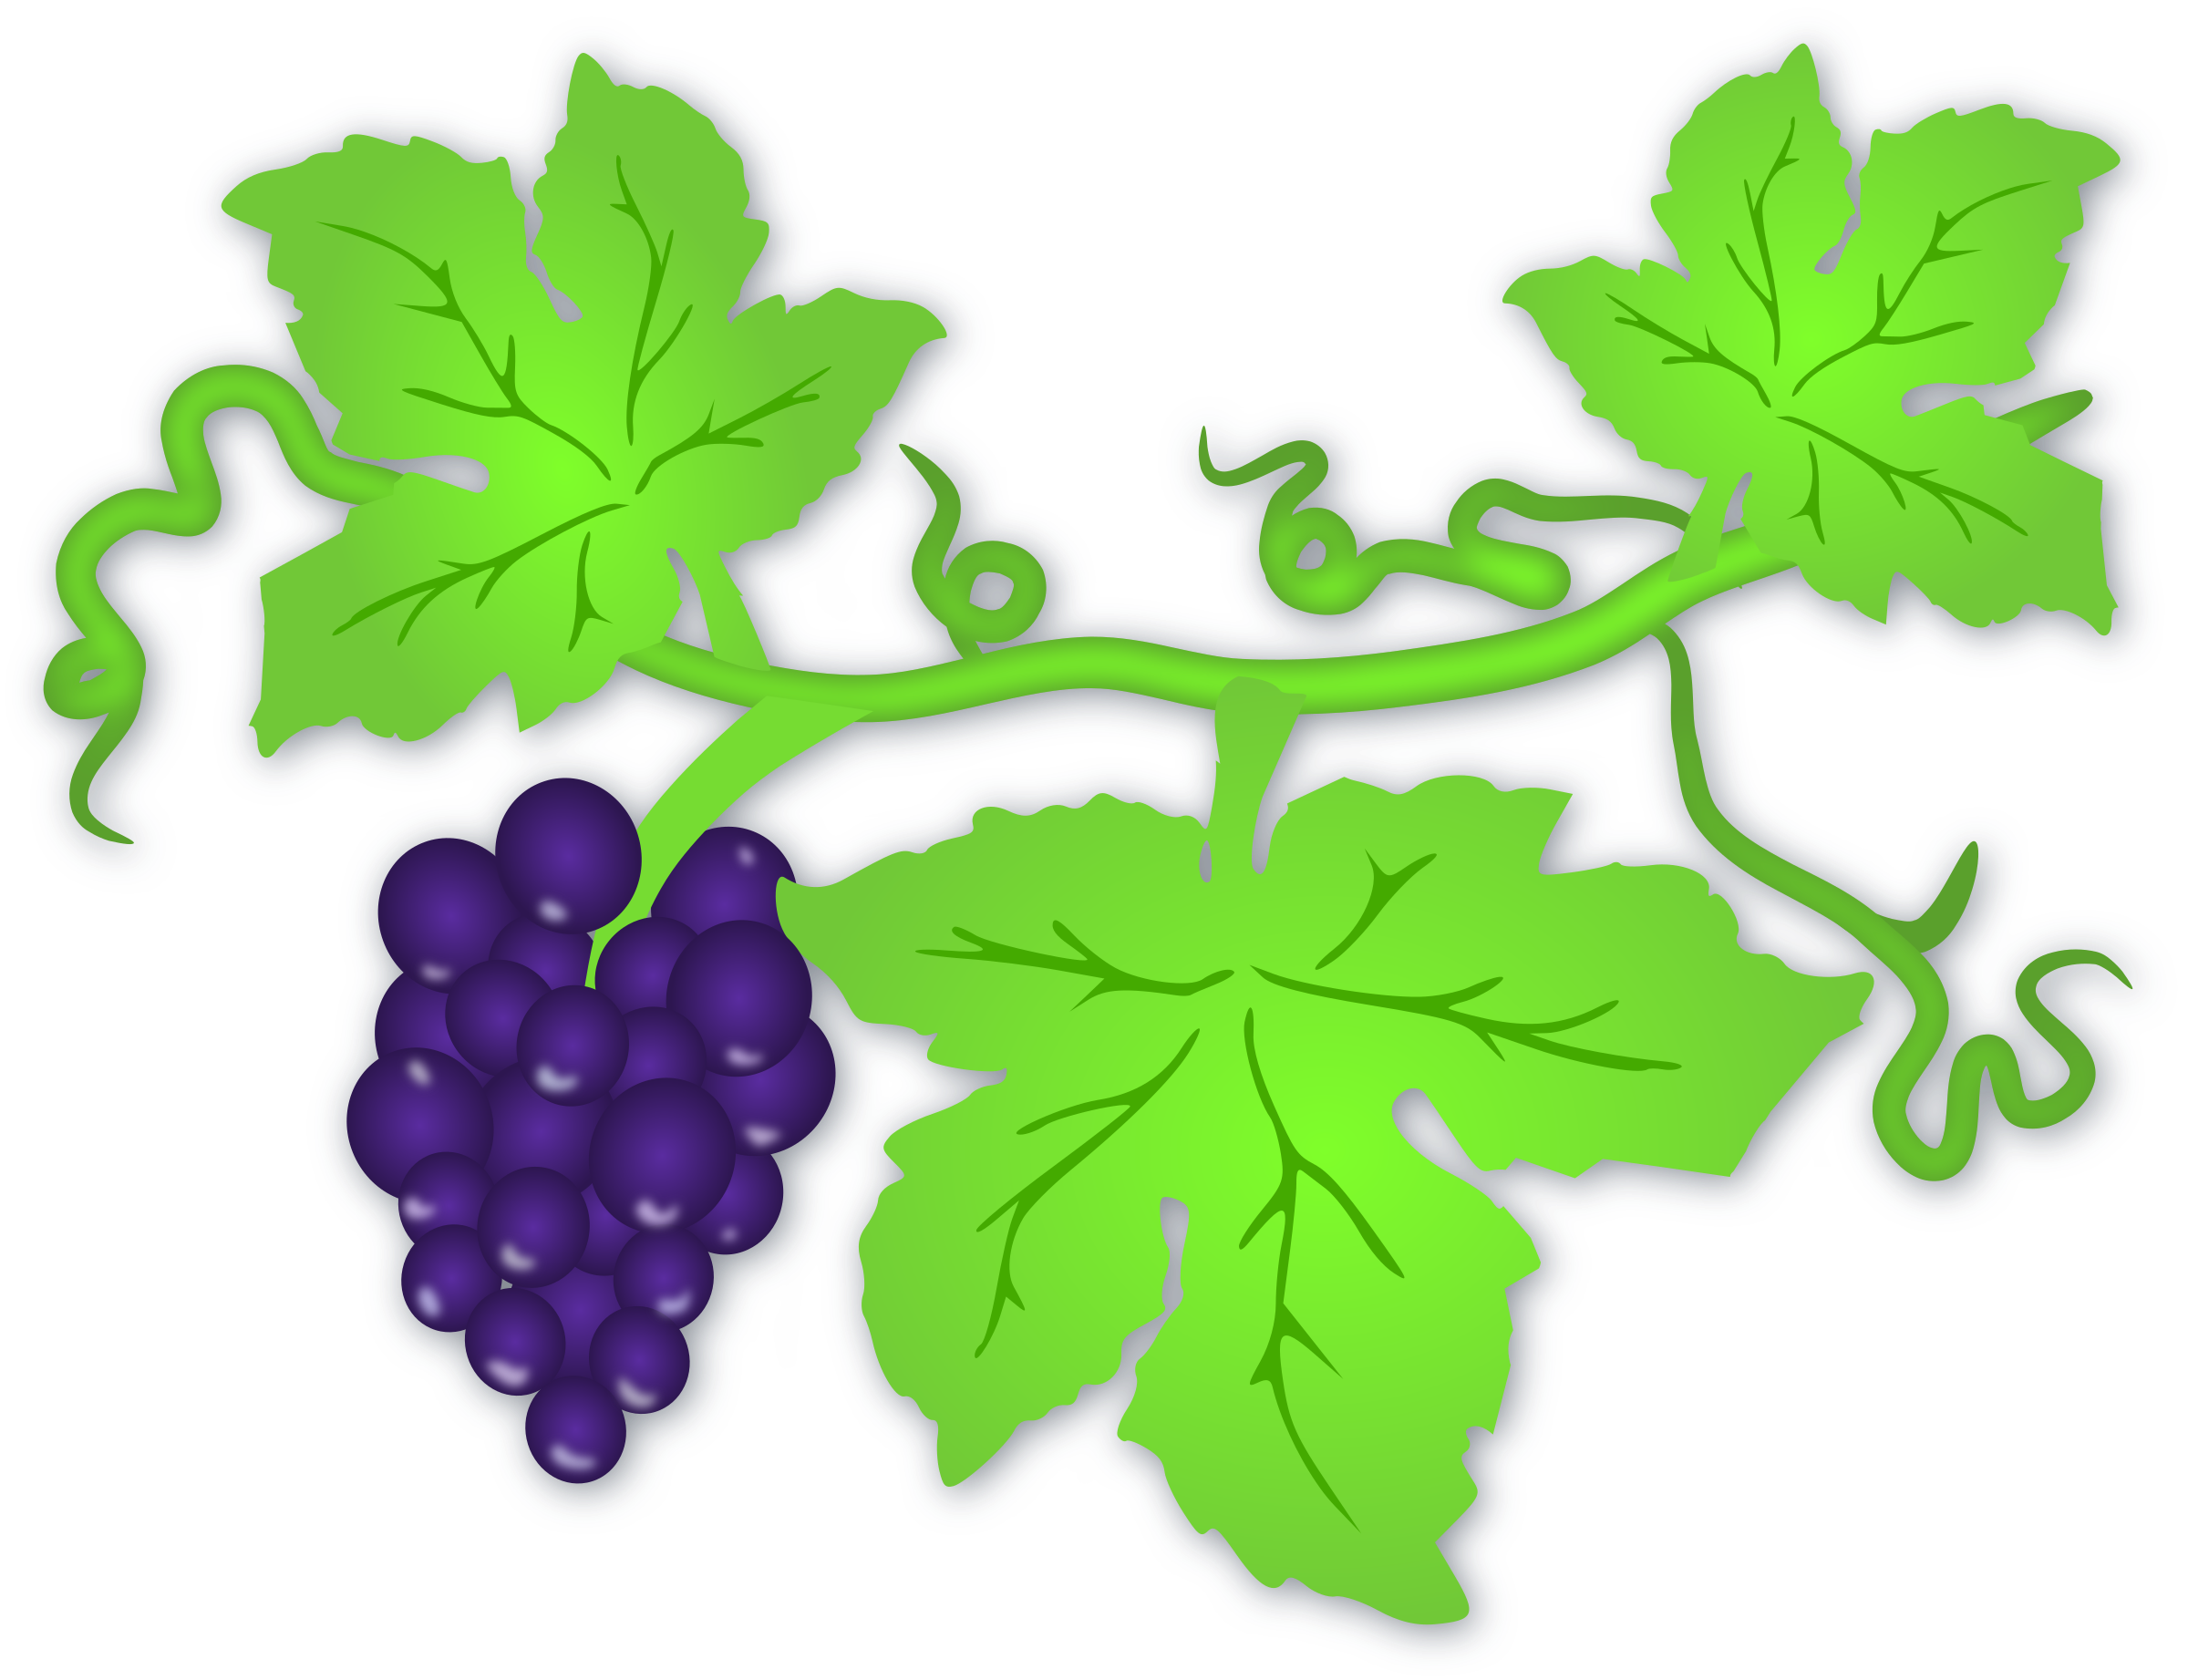 Grapes by gnokii